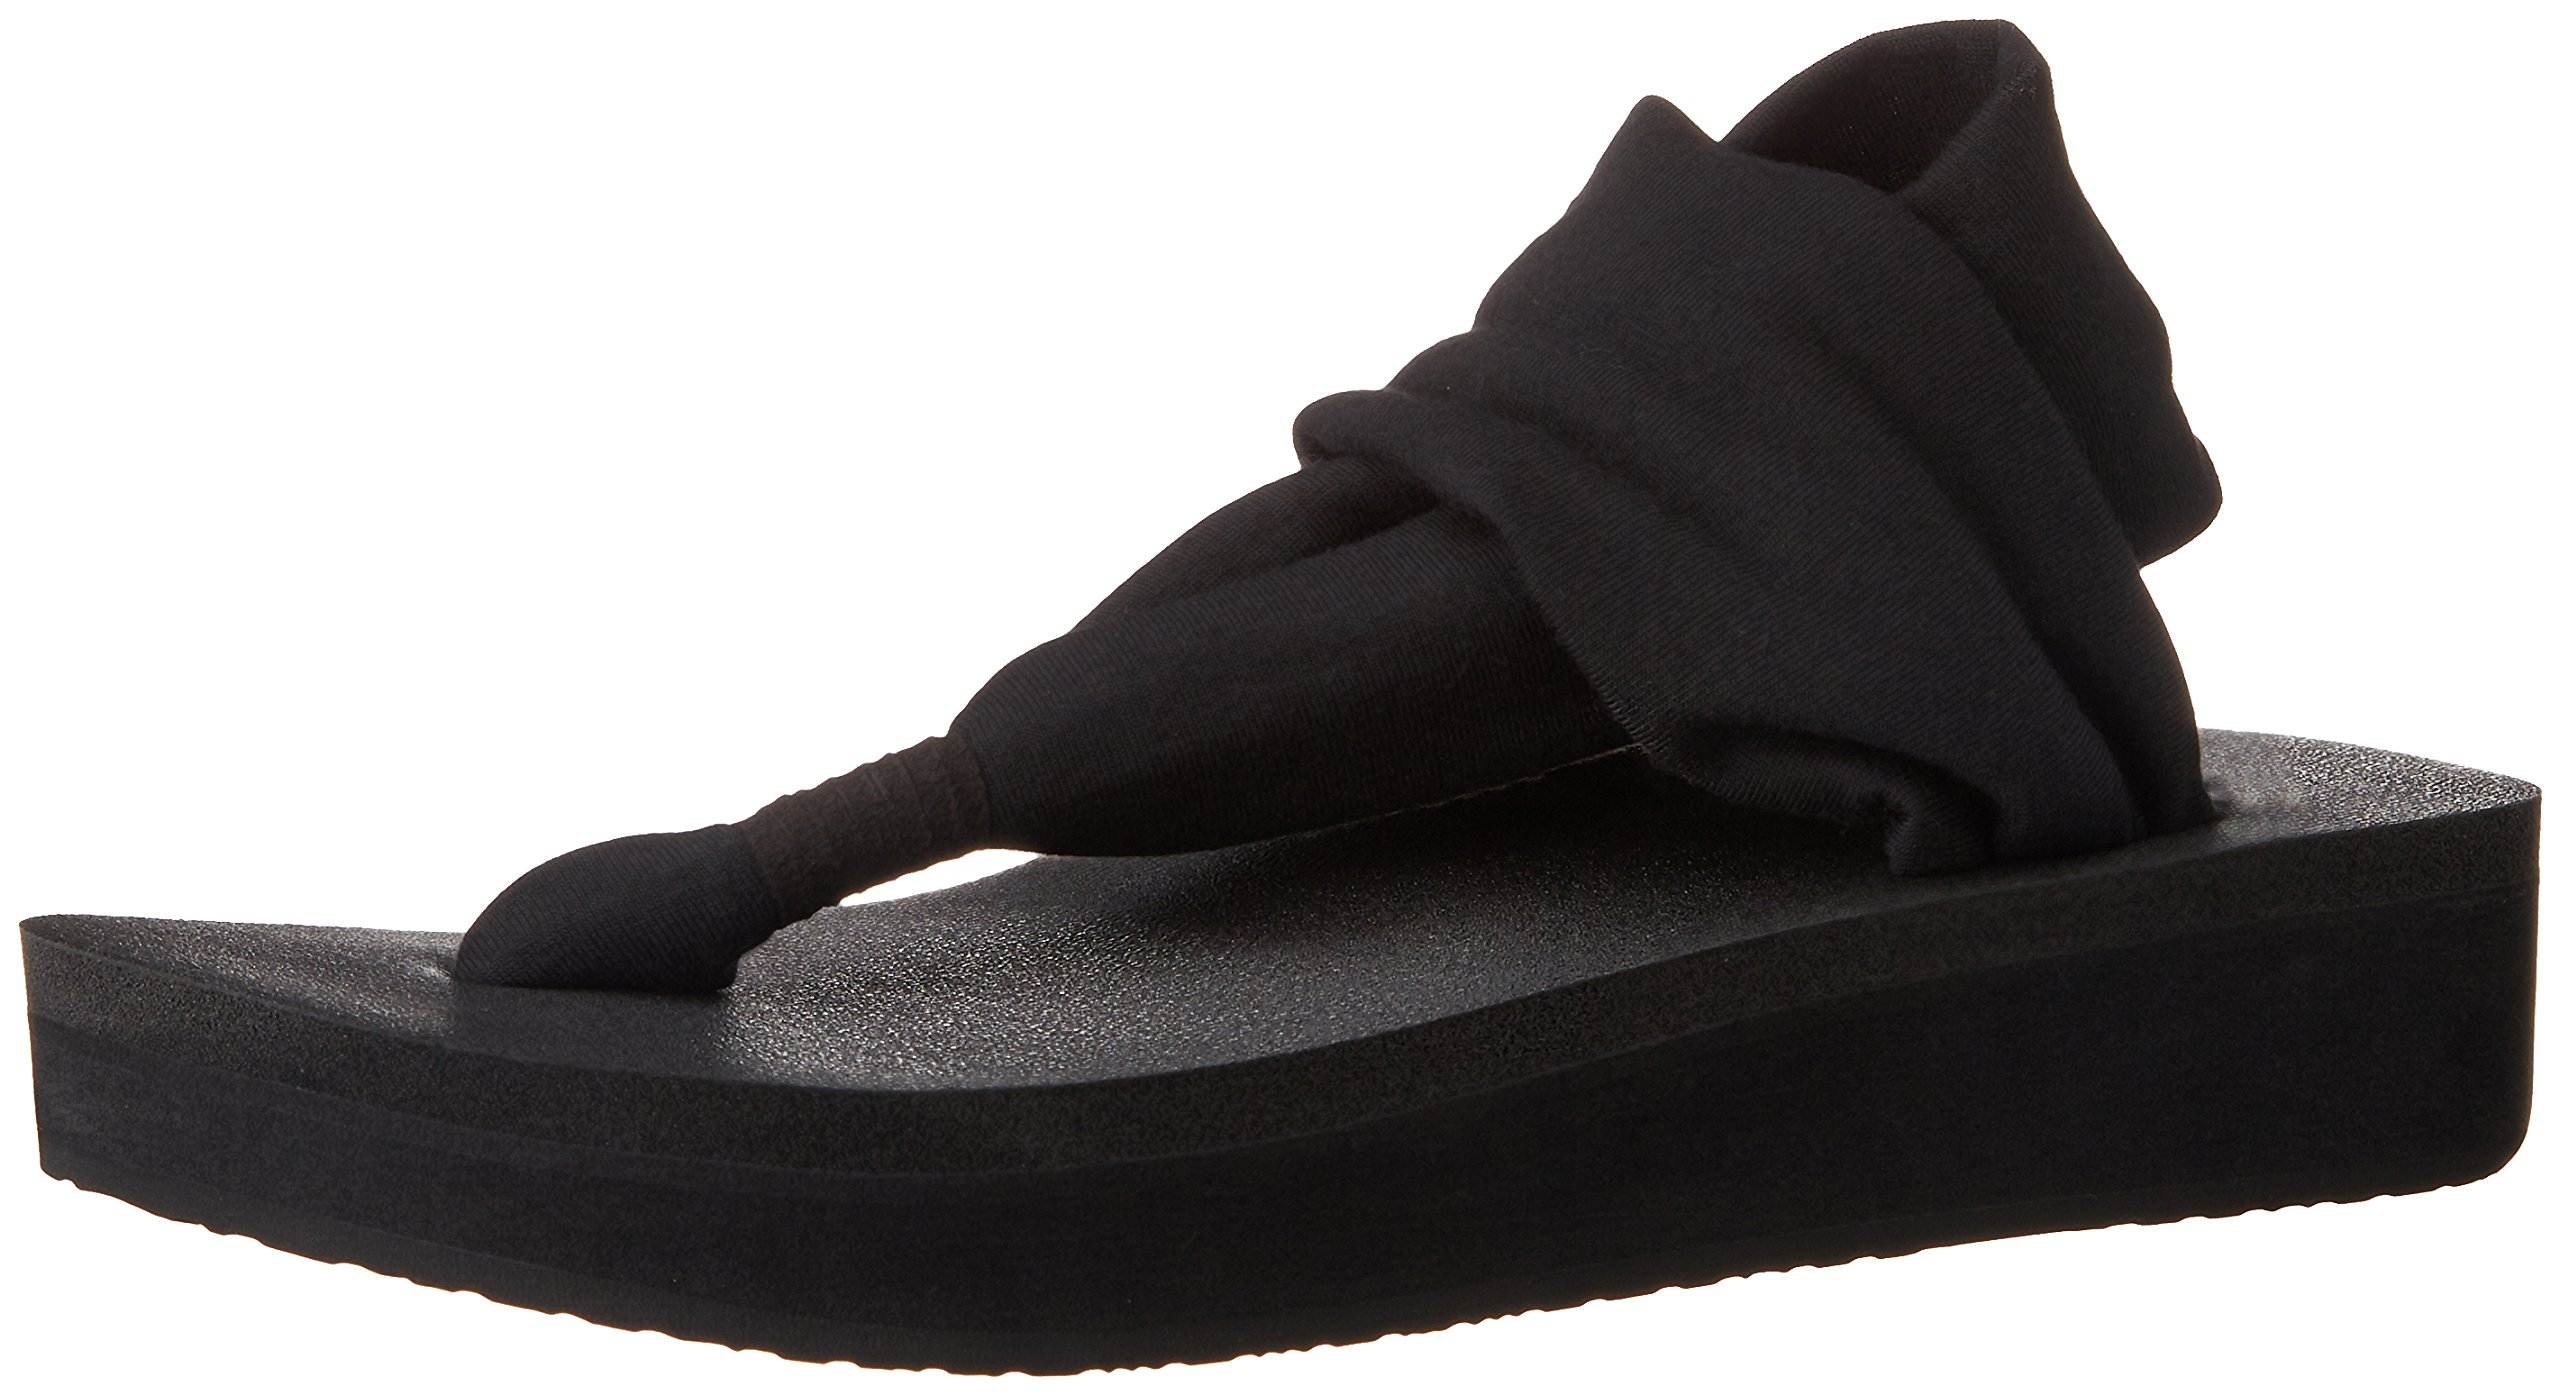 Sanuk Women's Yoga Sling Wedge Flip Flop, Black, 7 M US